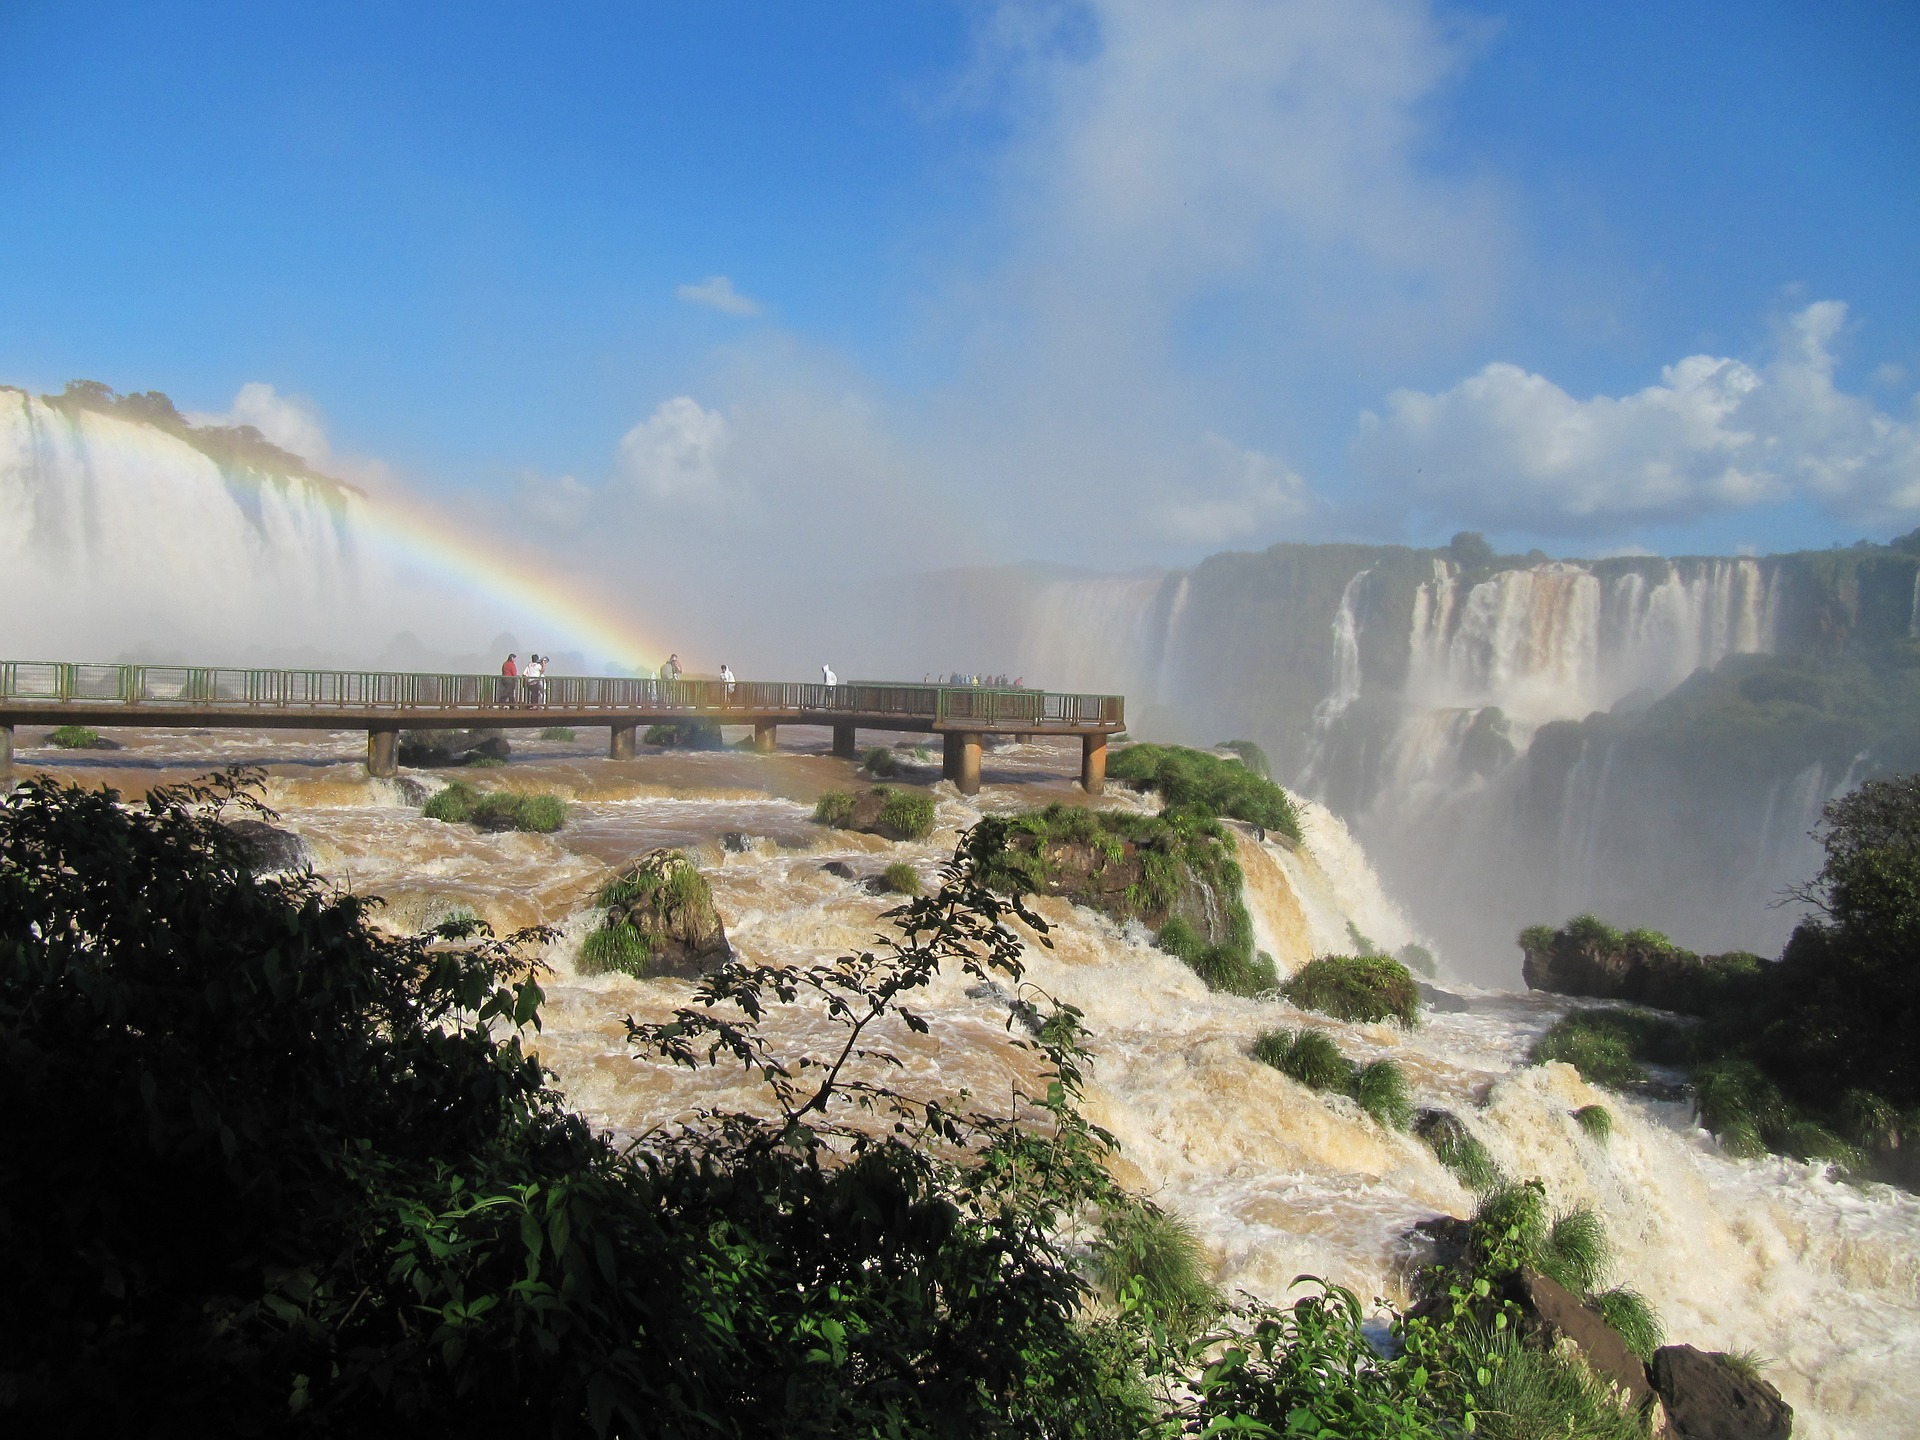 Iguazu Falls – One of the seven natural wonders of the world